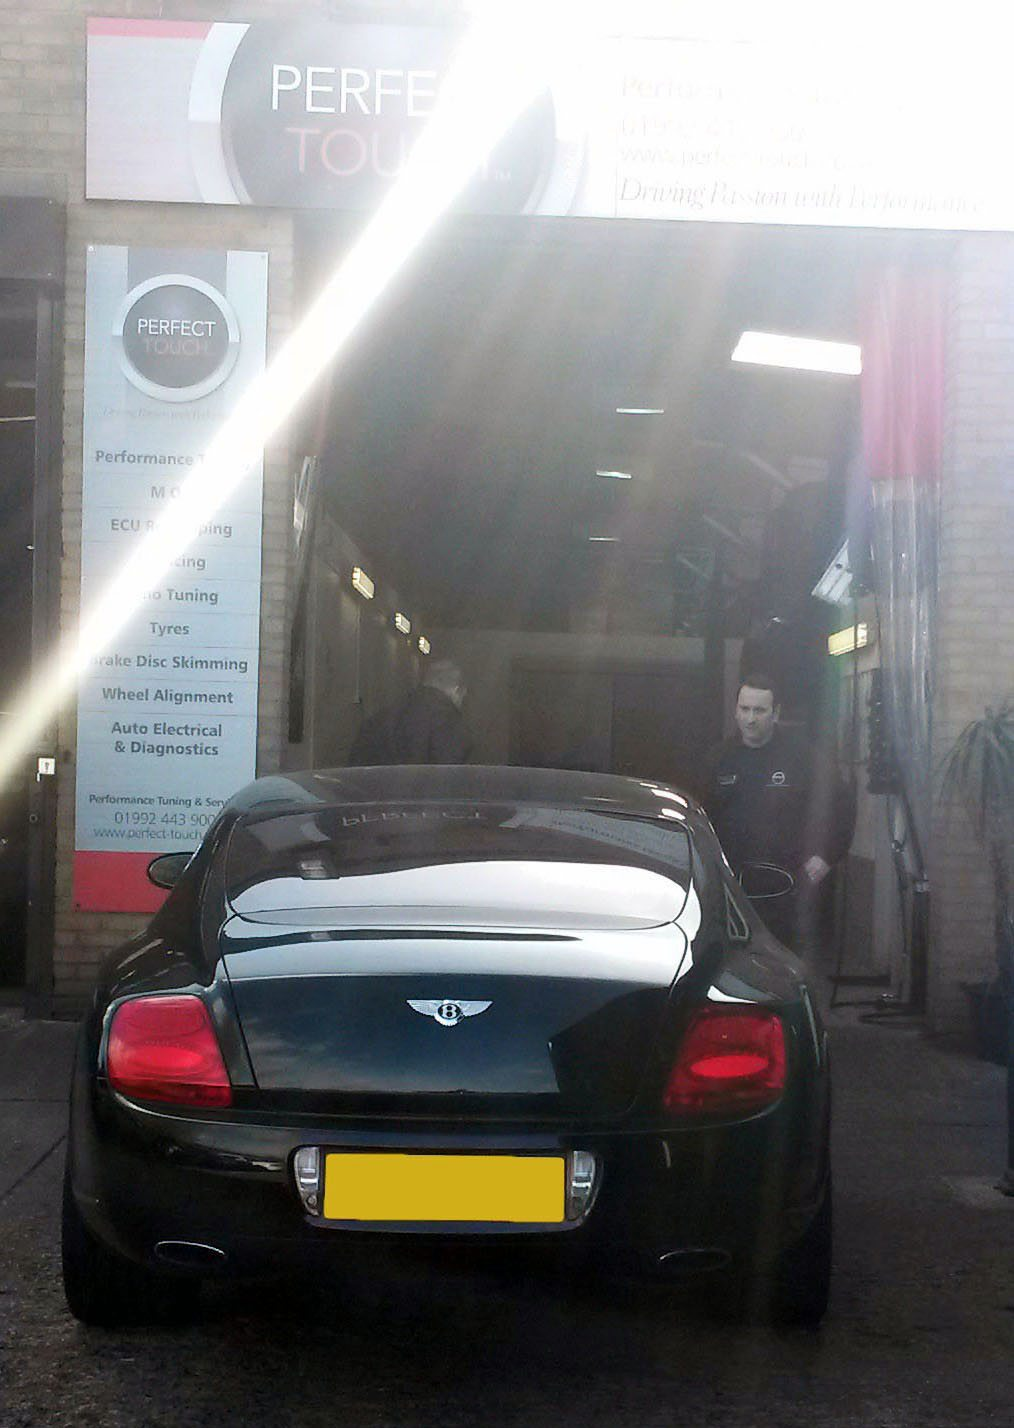 Bentley Continental Gt Service And Power Steering Fix Perfect Touch Performance Ltd